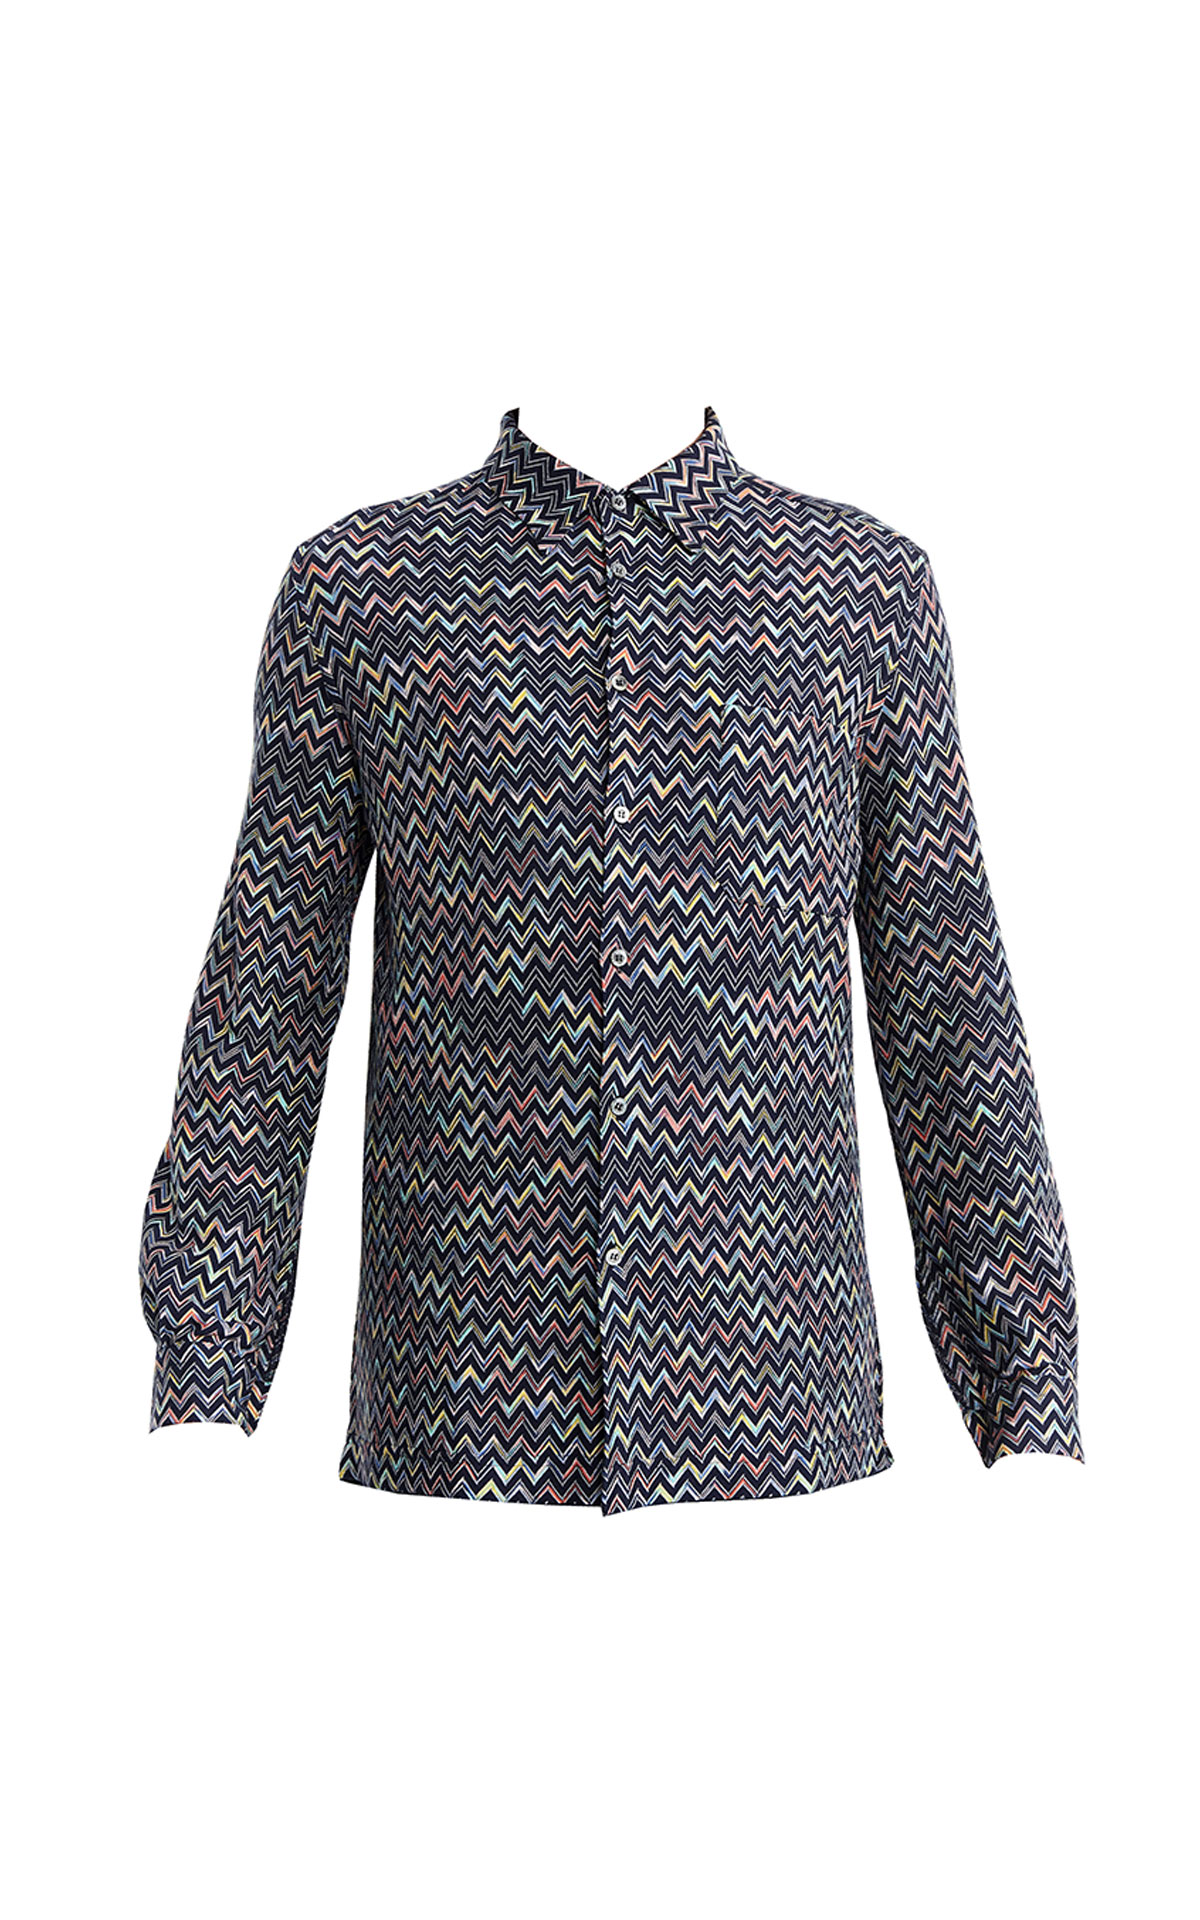 Missoni Men's long sleeve shirt from Bicester Village